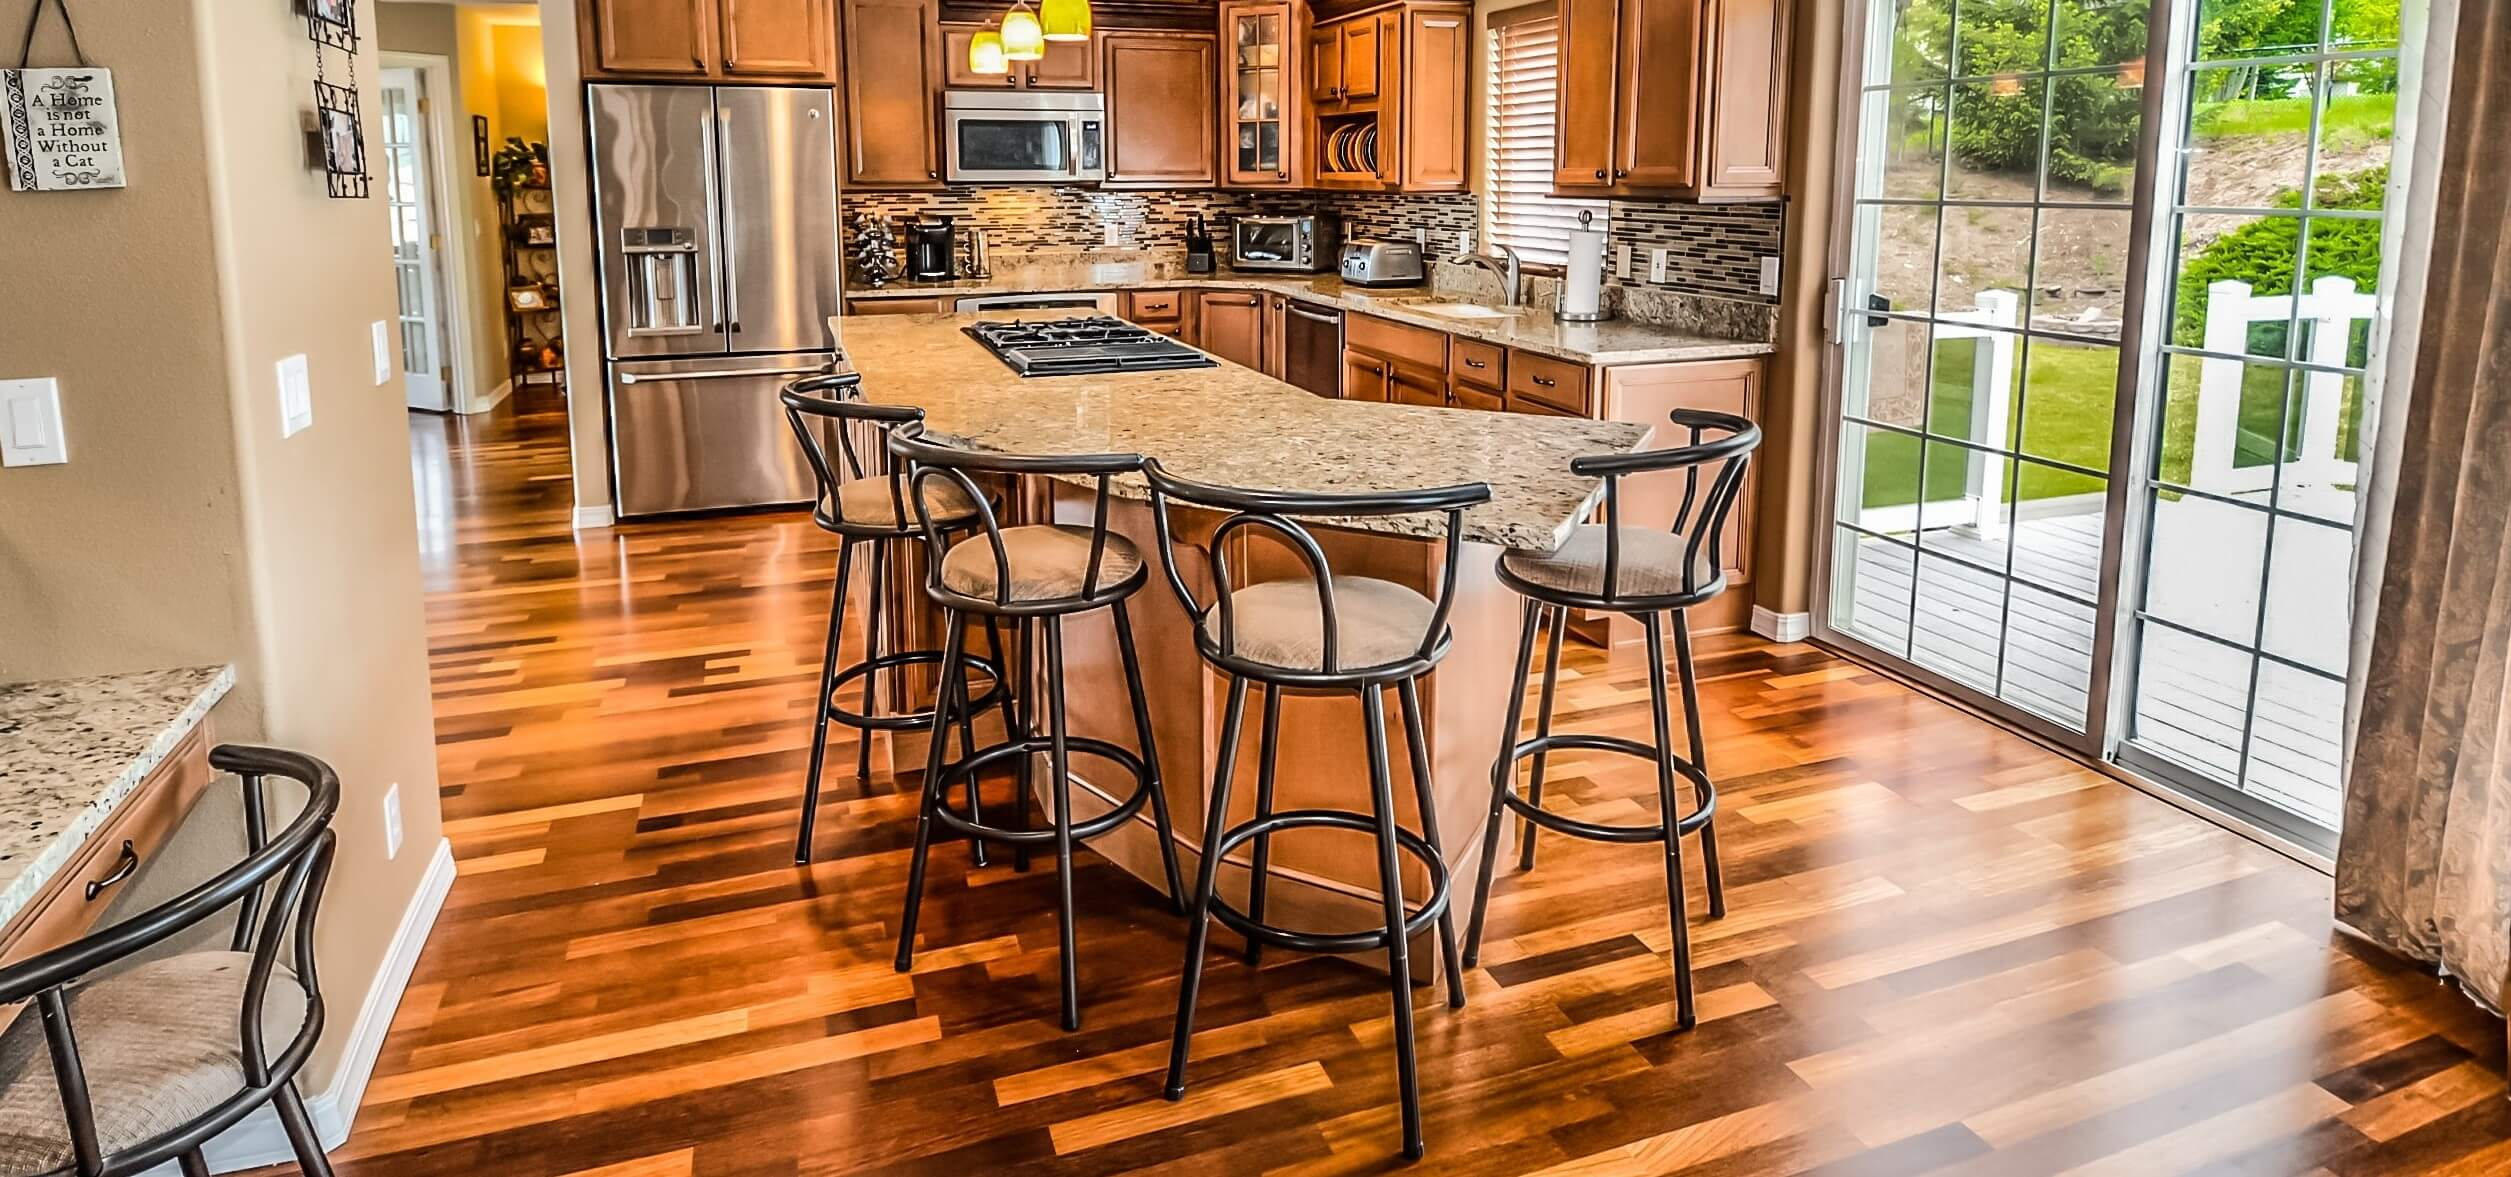 What Are The 5 Most Popular Kitchen Layout in 2021